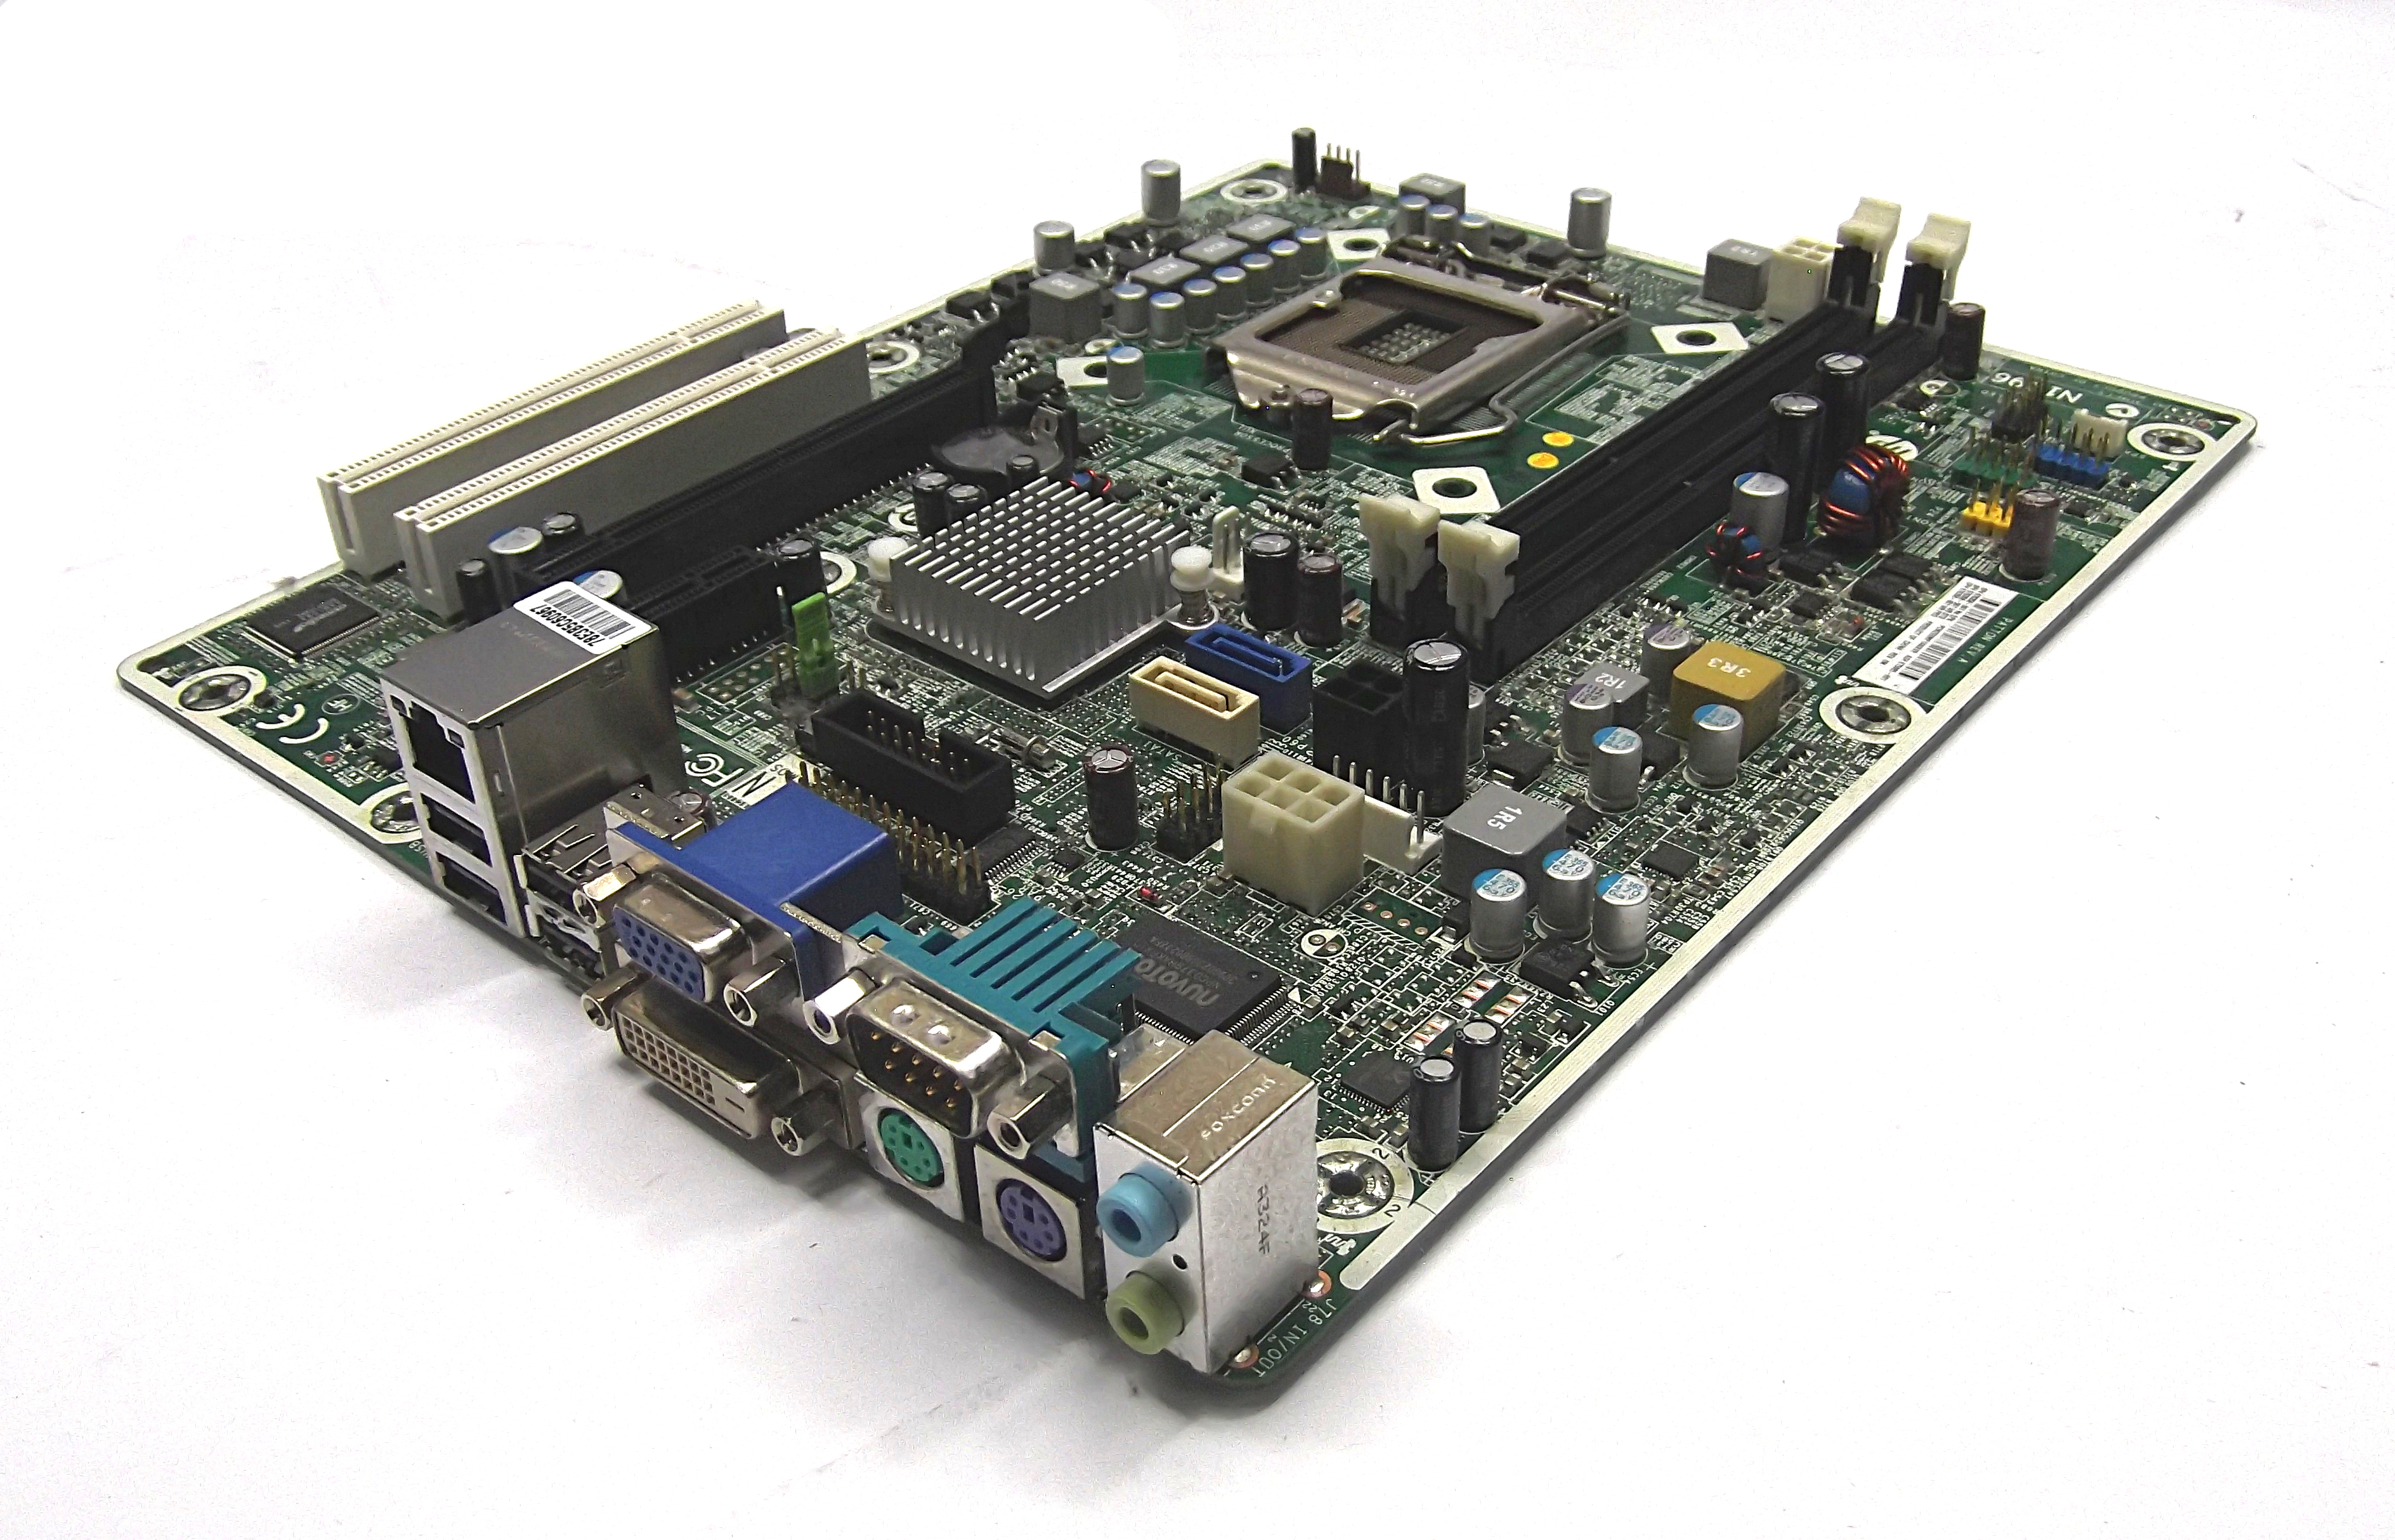 HP Compaq 675885-001 Socket LGA1155 Motherboard for Pro 4300 SFF PC